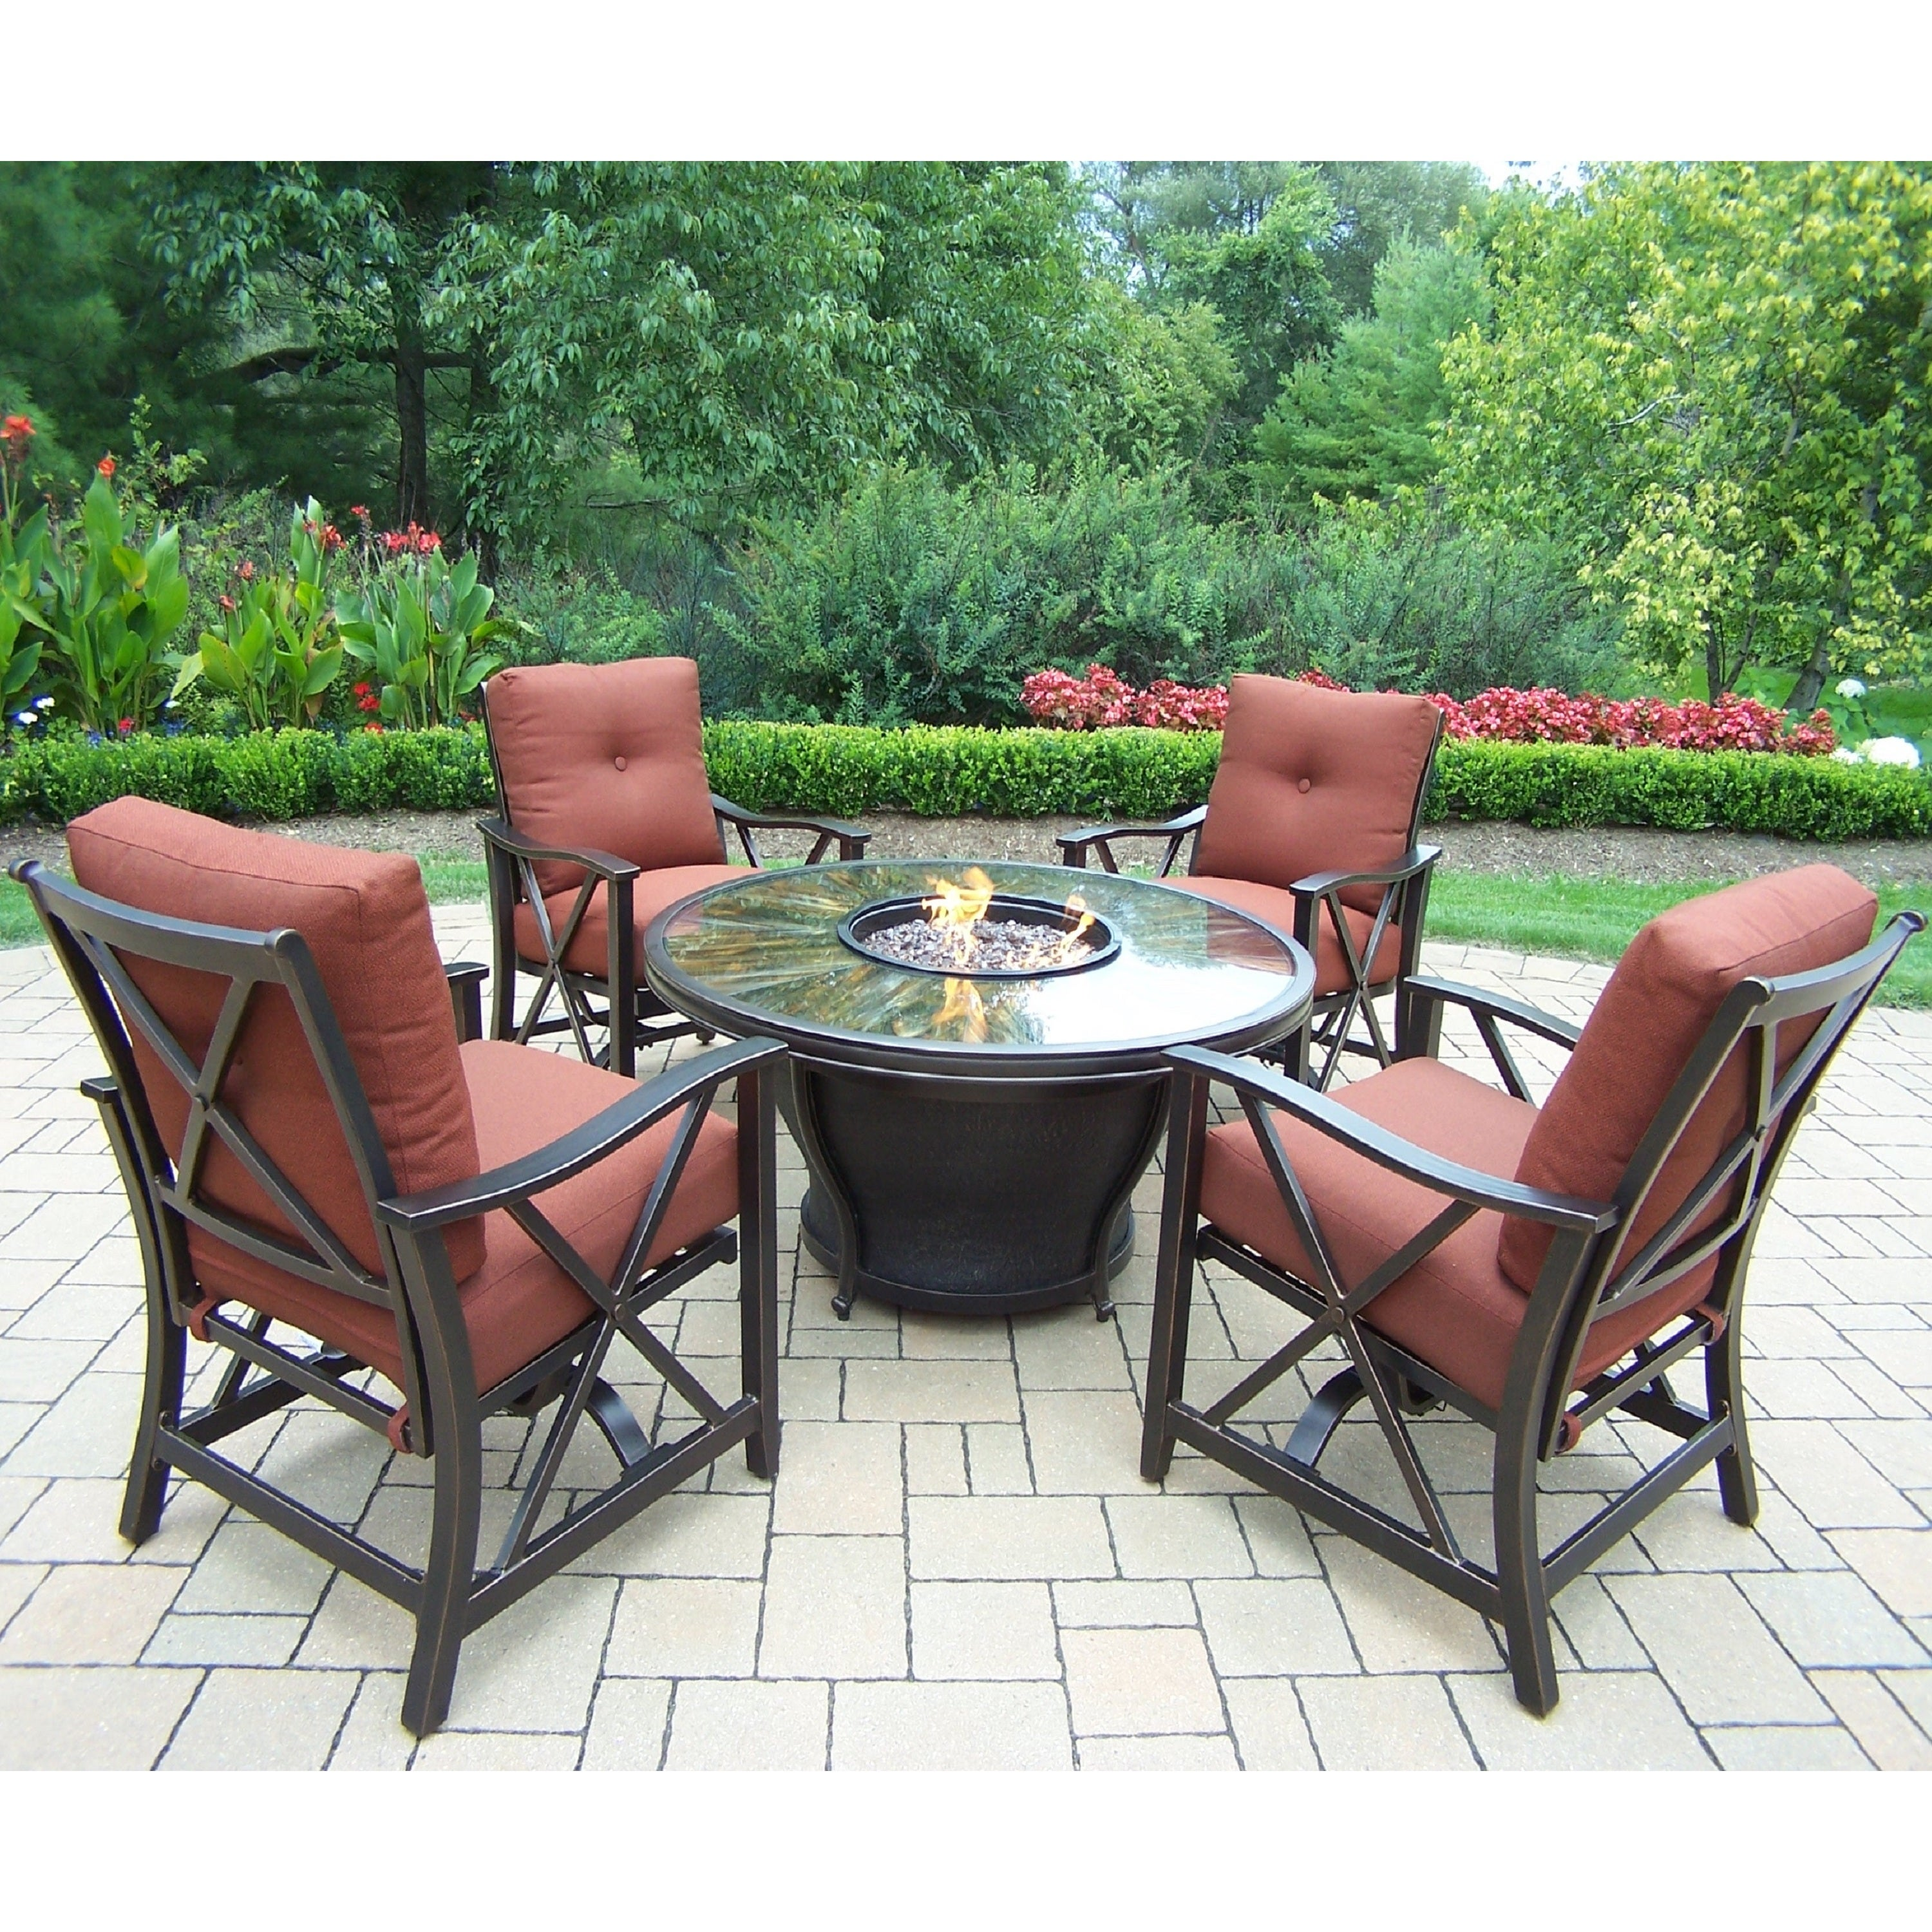 Shop Round Fire Pit Table, Glass Beads, Cover, Rocking Chairs And Cushions    On Sale   Free Shipping Today   Overstock.com   11020047